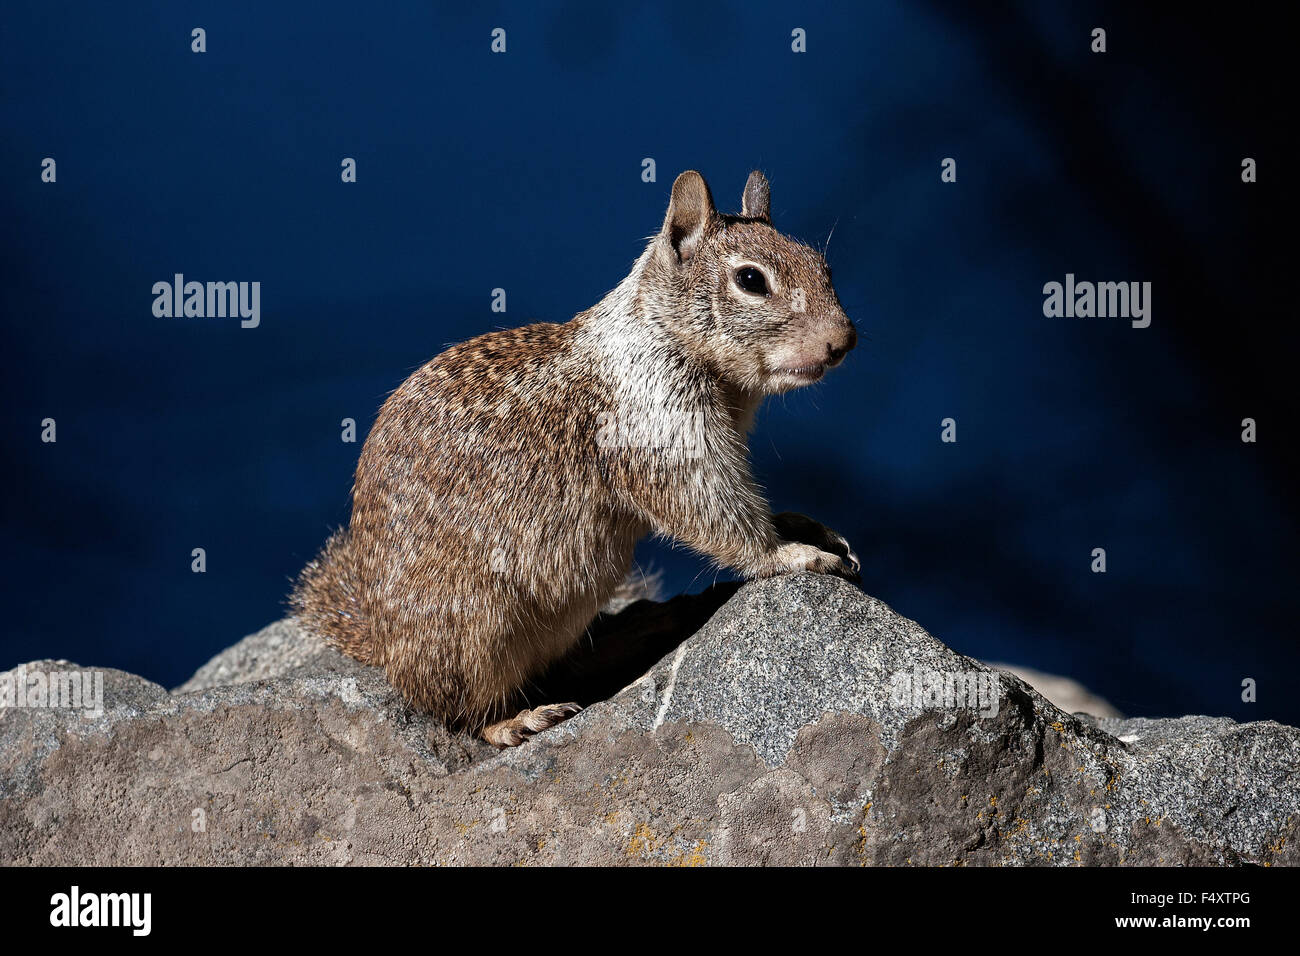 Californian ground squirrel (Citellus beecheyi), Yosemite National Park, California, USA - Stock Image